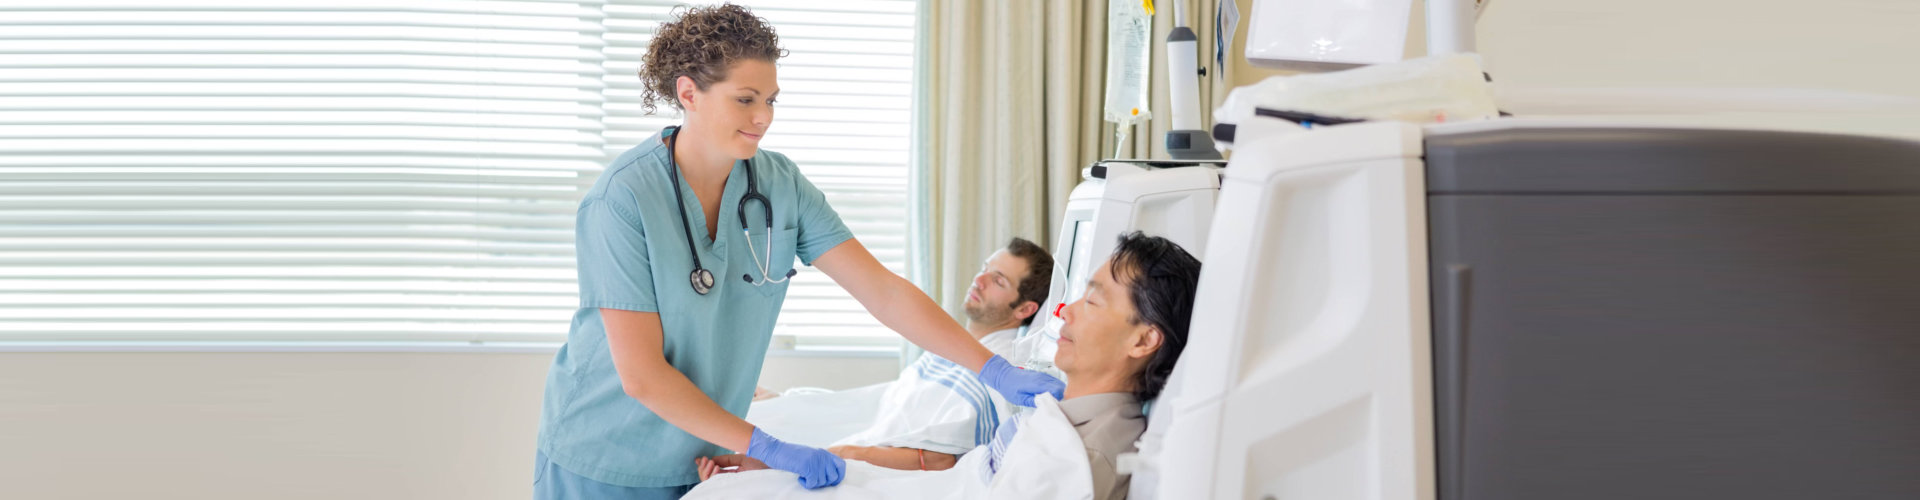 Female nurse assisting patient undergoing renal dialysis in hospital room